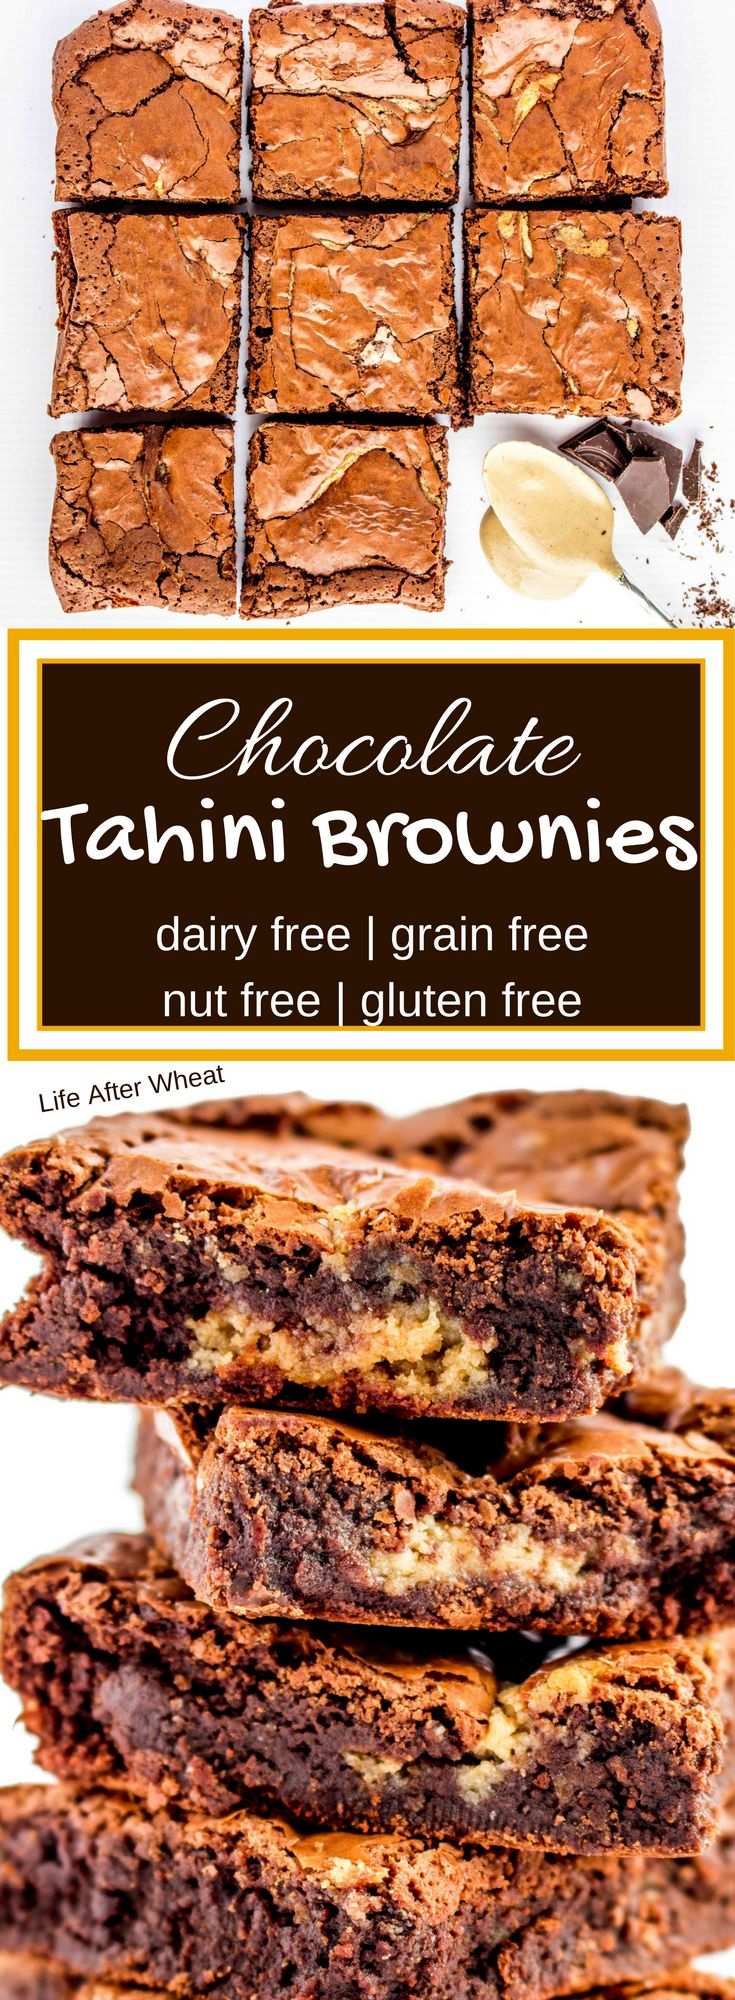 The addition of a sweet tahini swirl gives these Gluten Free Chocolate Tahini Brownies a subtle, yet deliciously exotic flavor. Dairy free, gluten free, and grain free.